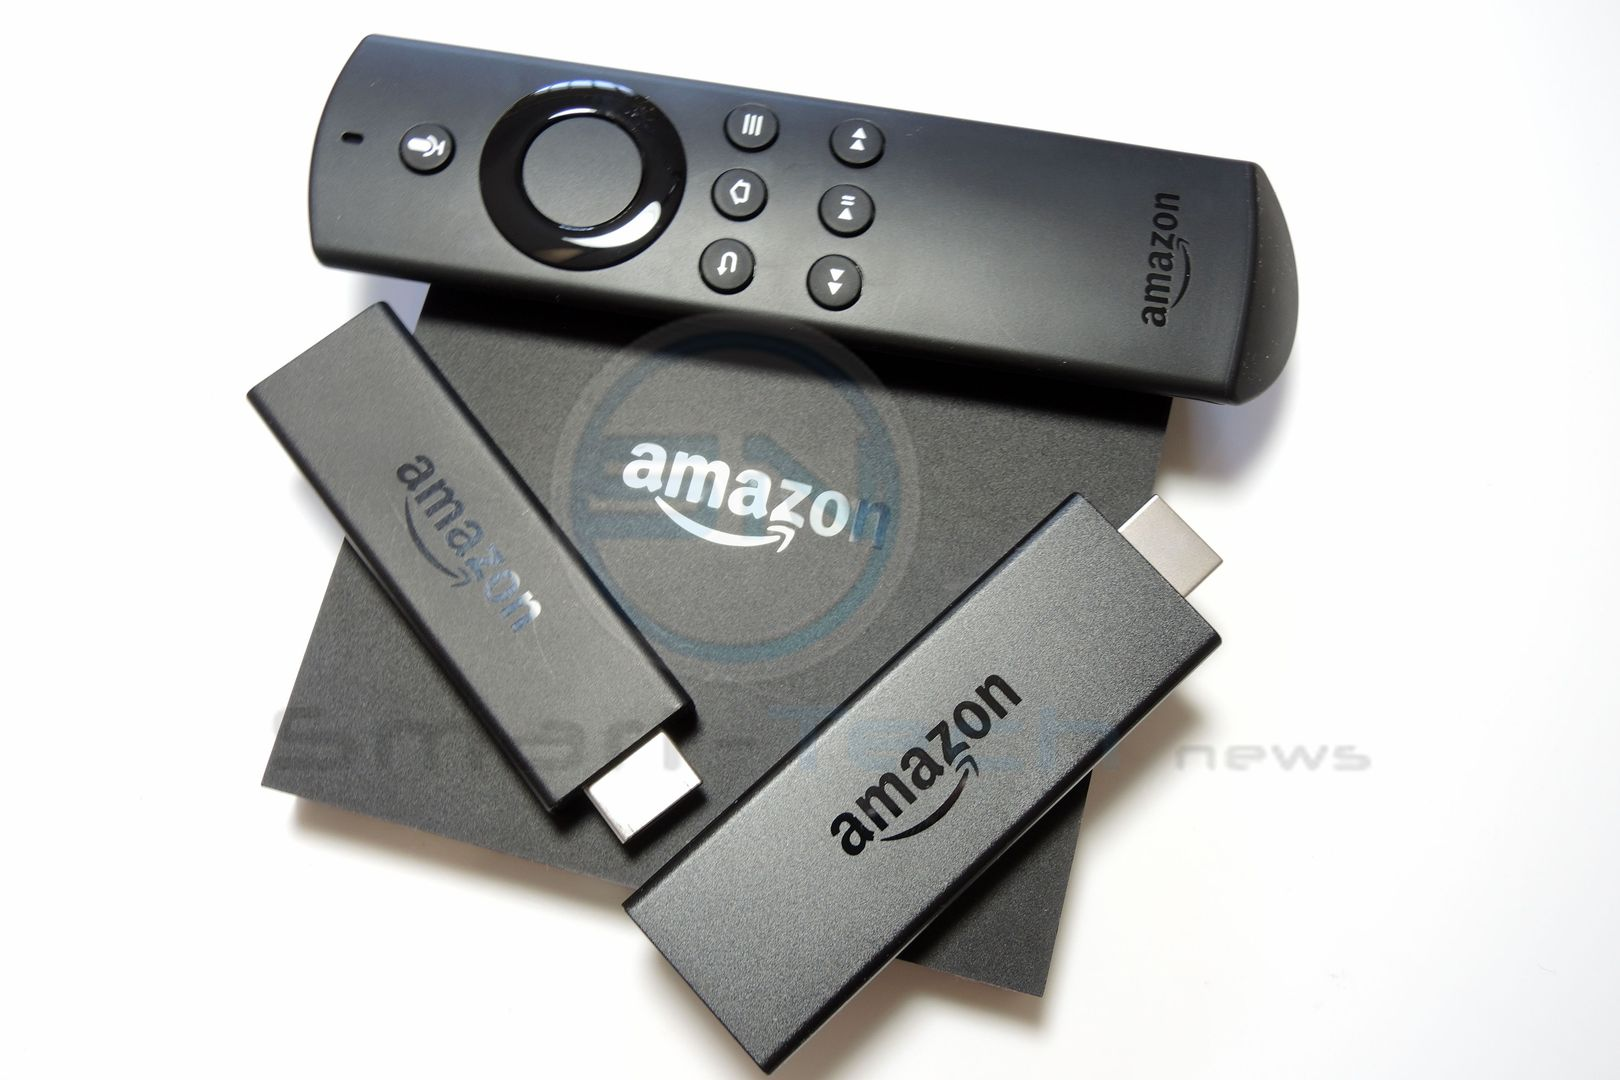 FireTV Update – Hot News – Amazon Prime